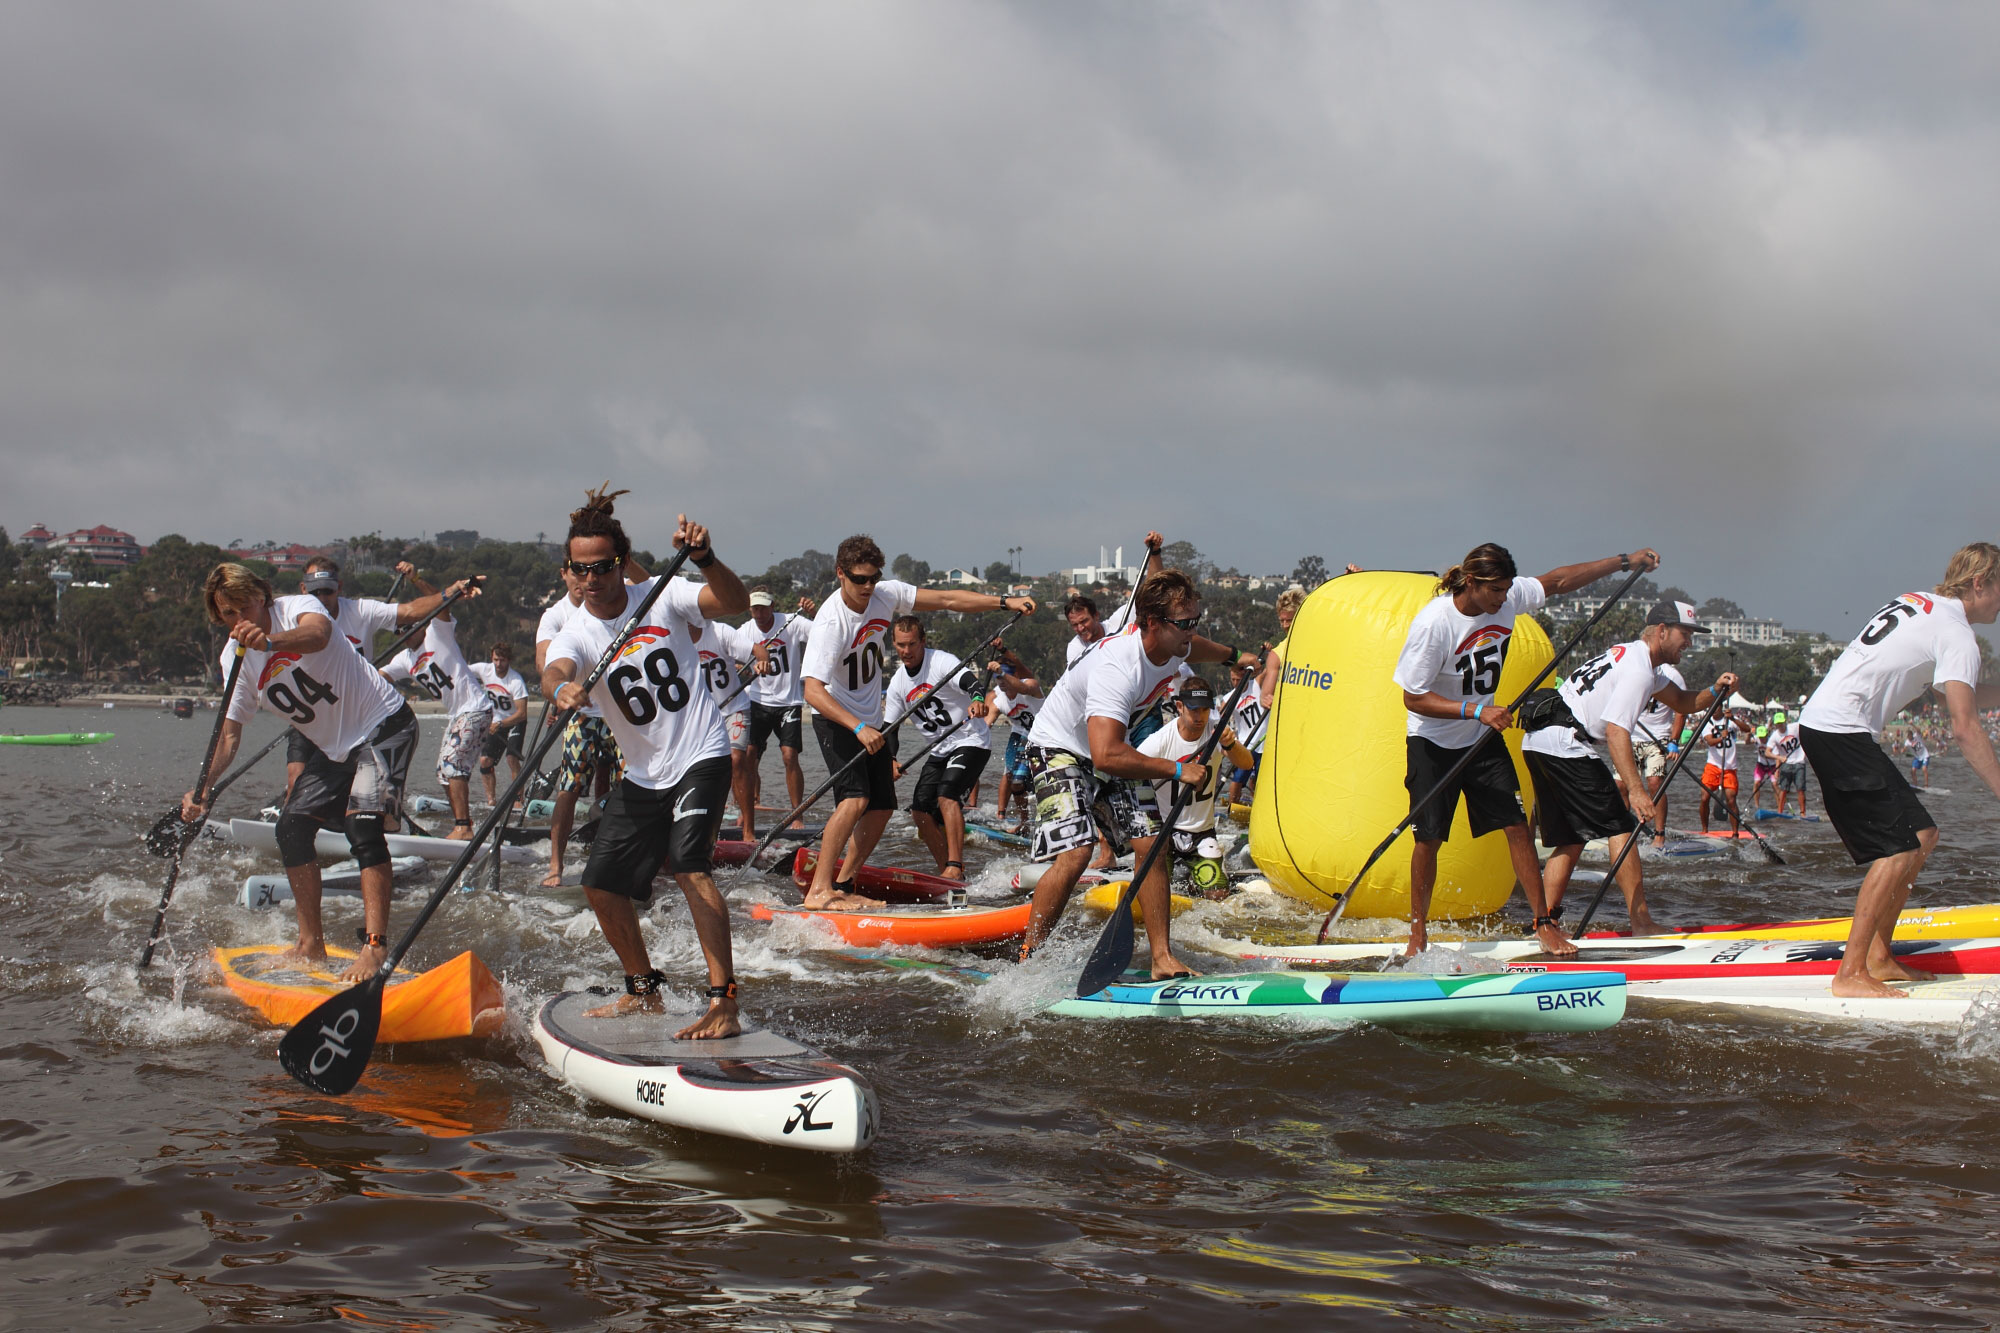 Race Results – 2011 Battle of the Paddle Dana Point